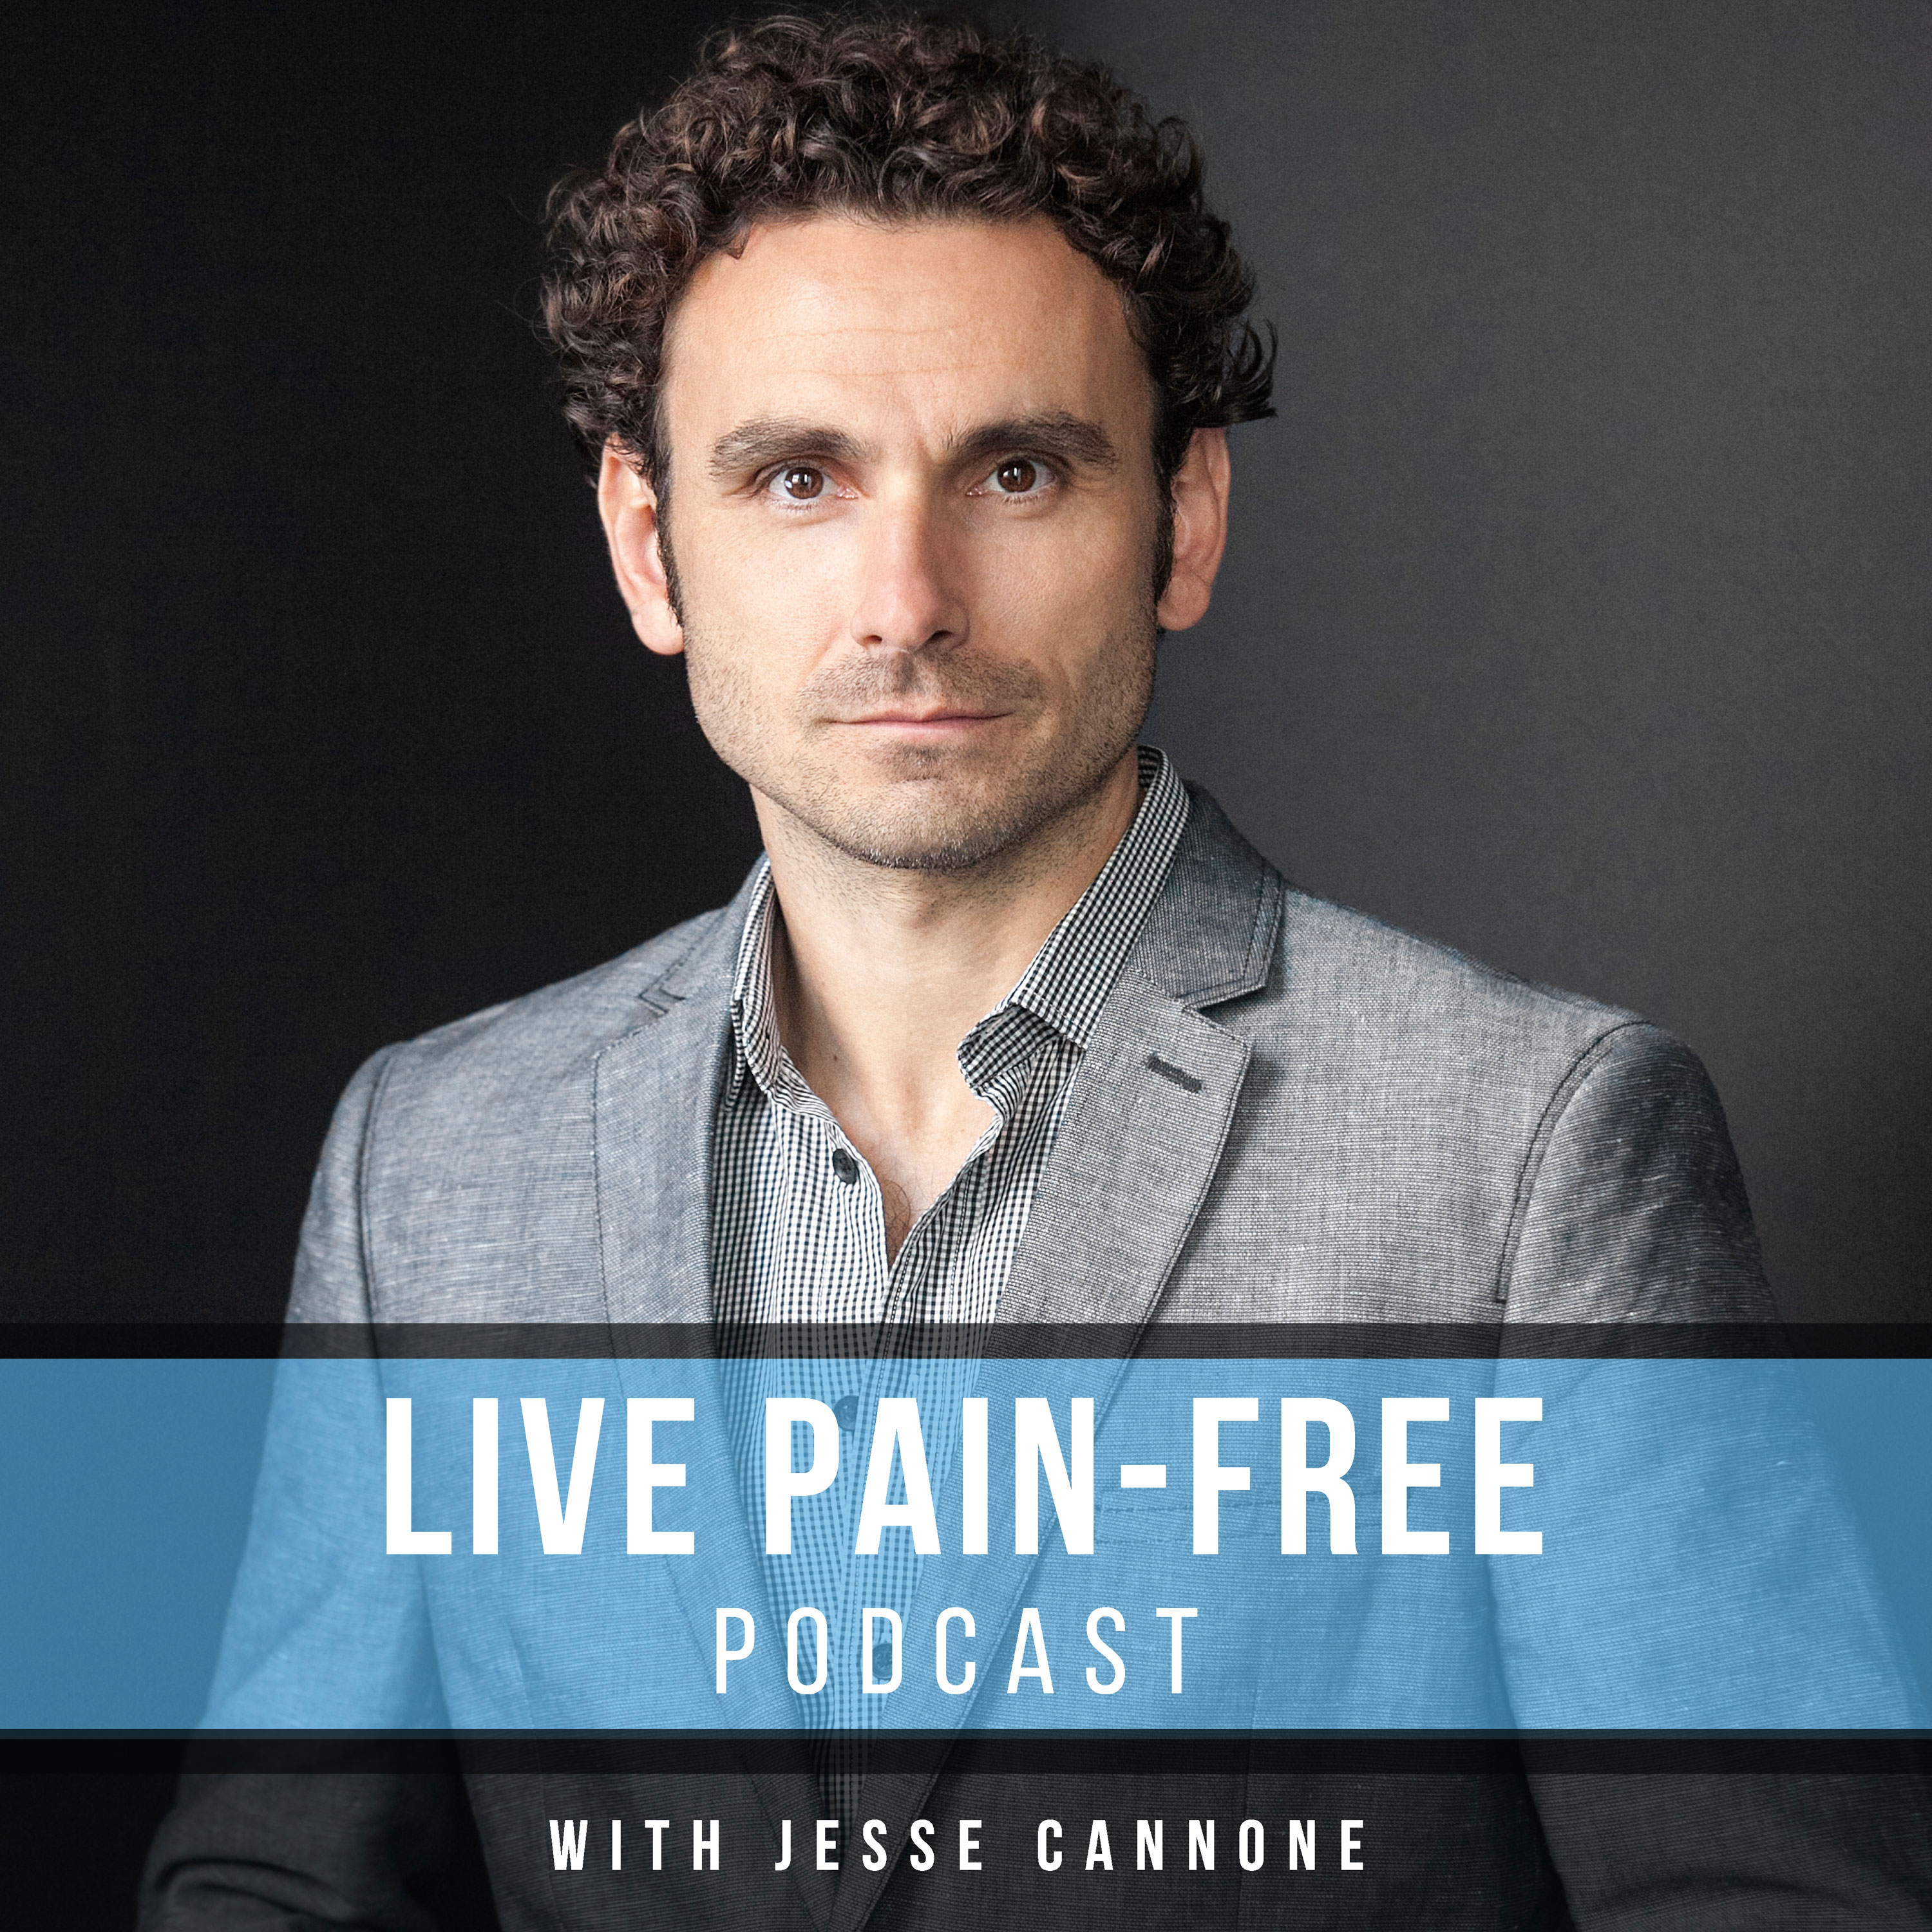 Live Pain-Free: Health, Fitness, and Alternative Medicine for Mind, Body and Spirit